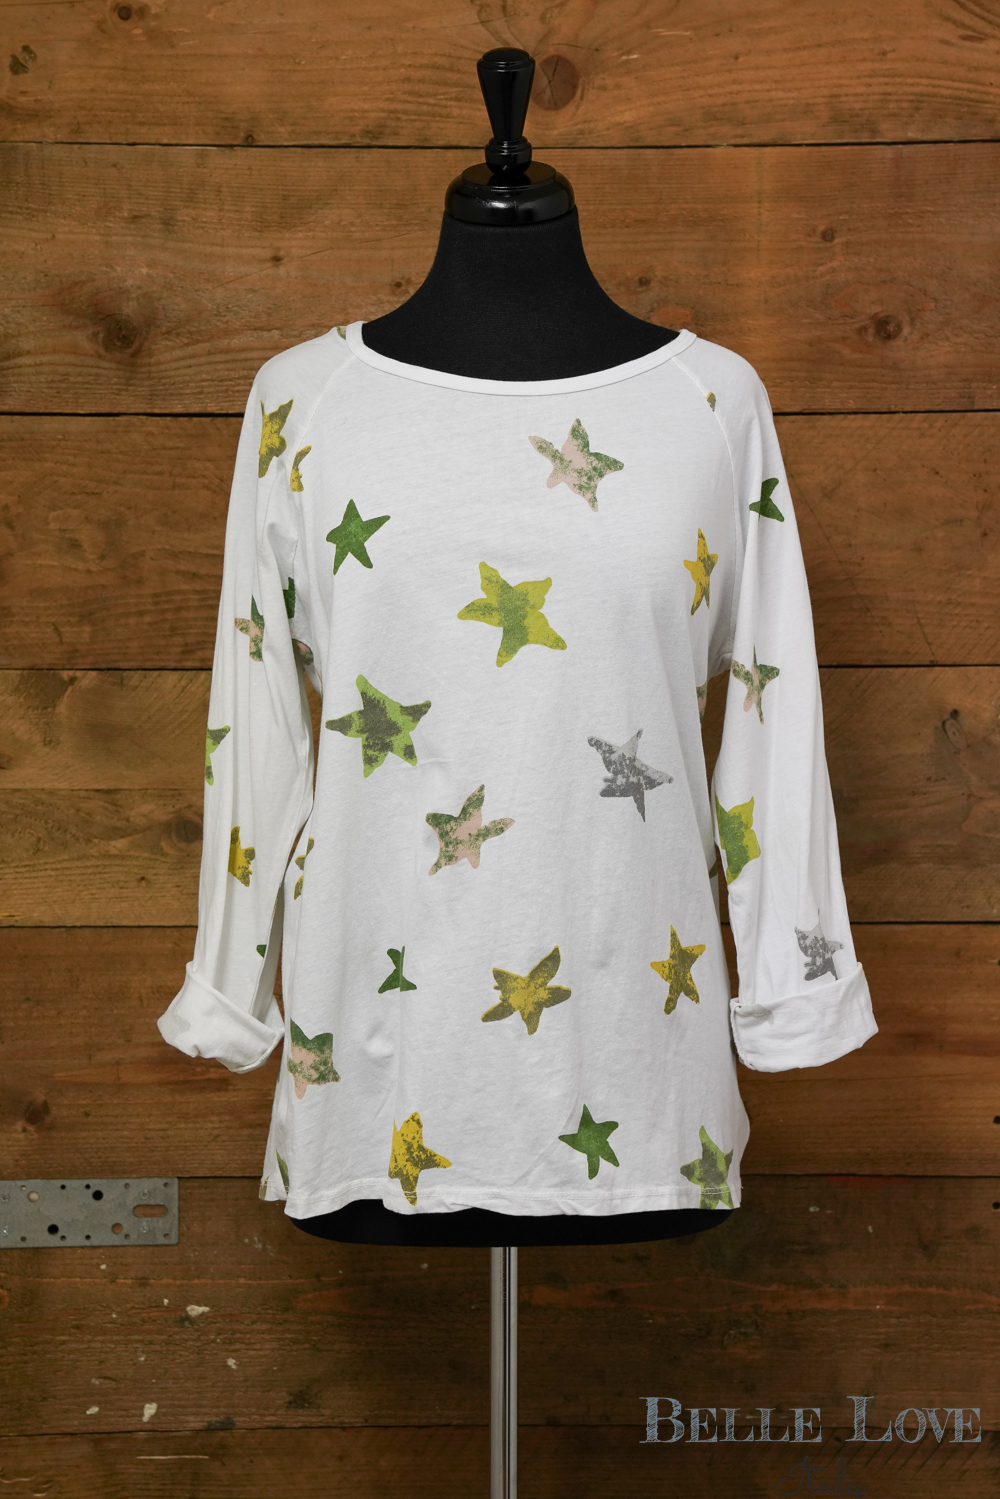 Belle Love Italy All Over Star Top